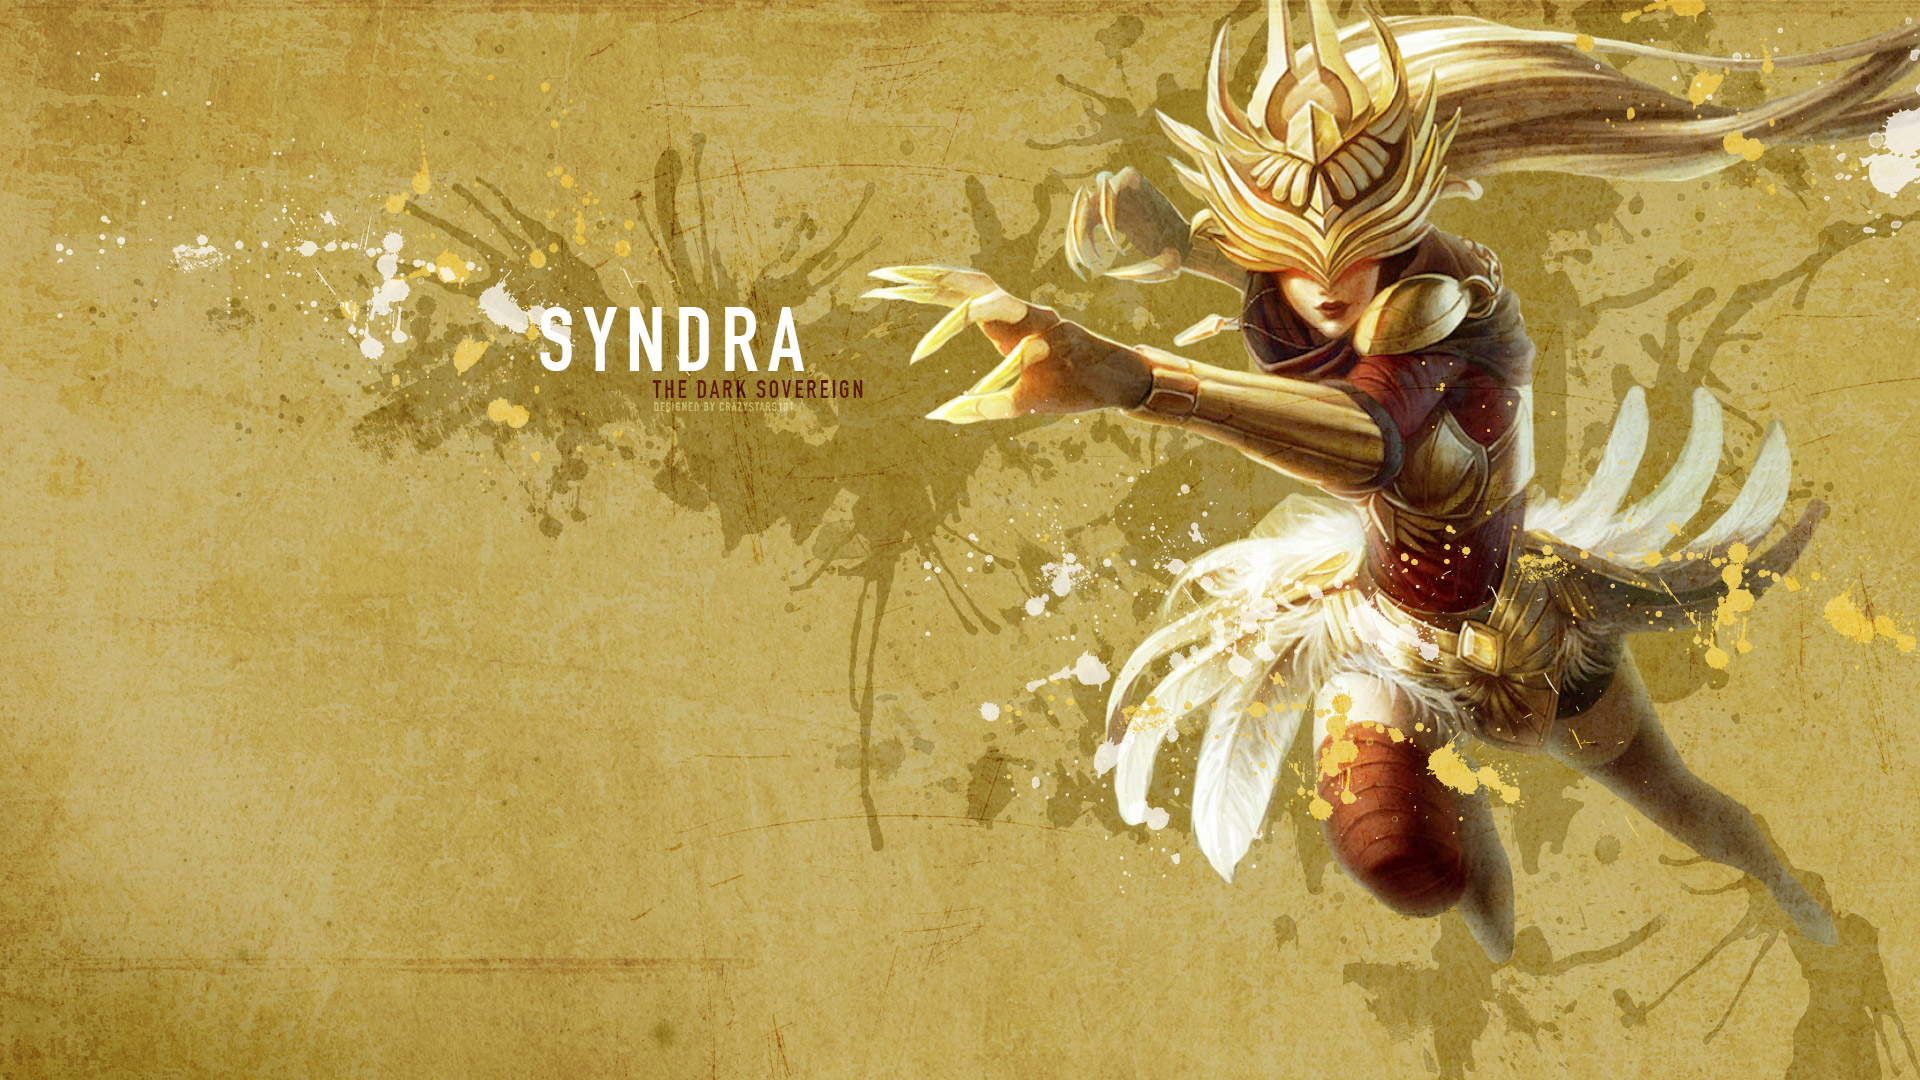 Syndra Wallpaper 1920x1080 - WallpaperSafari